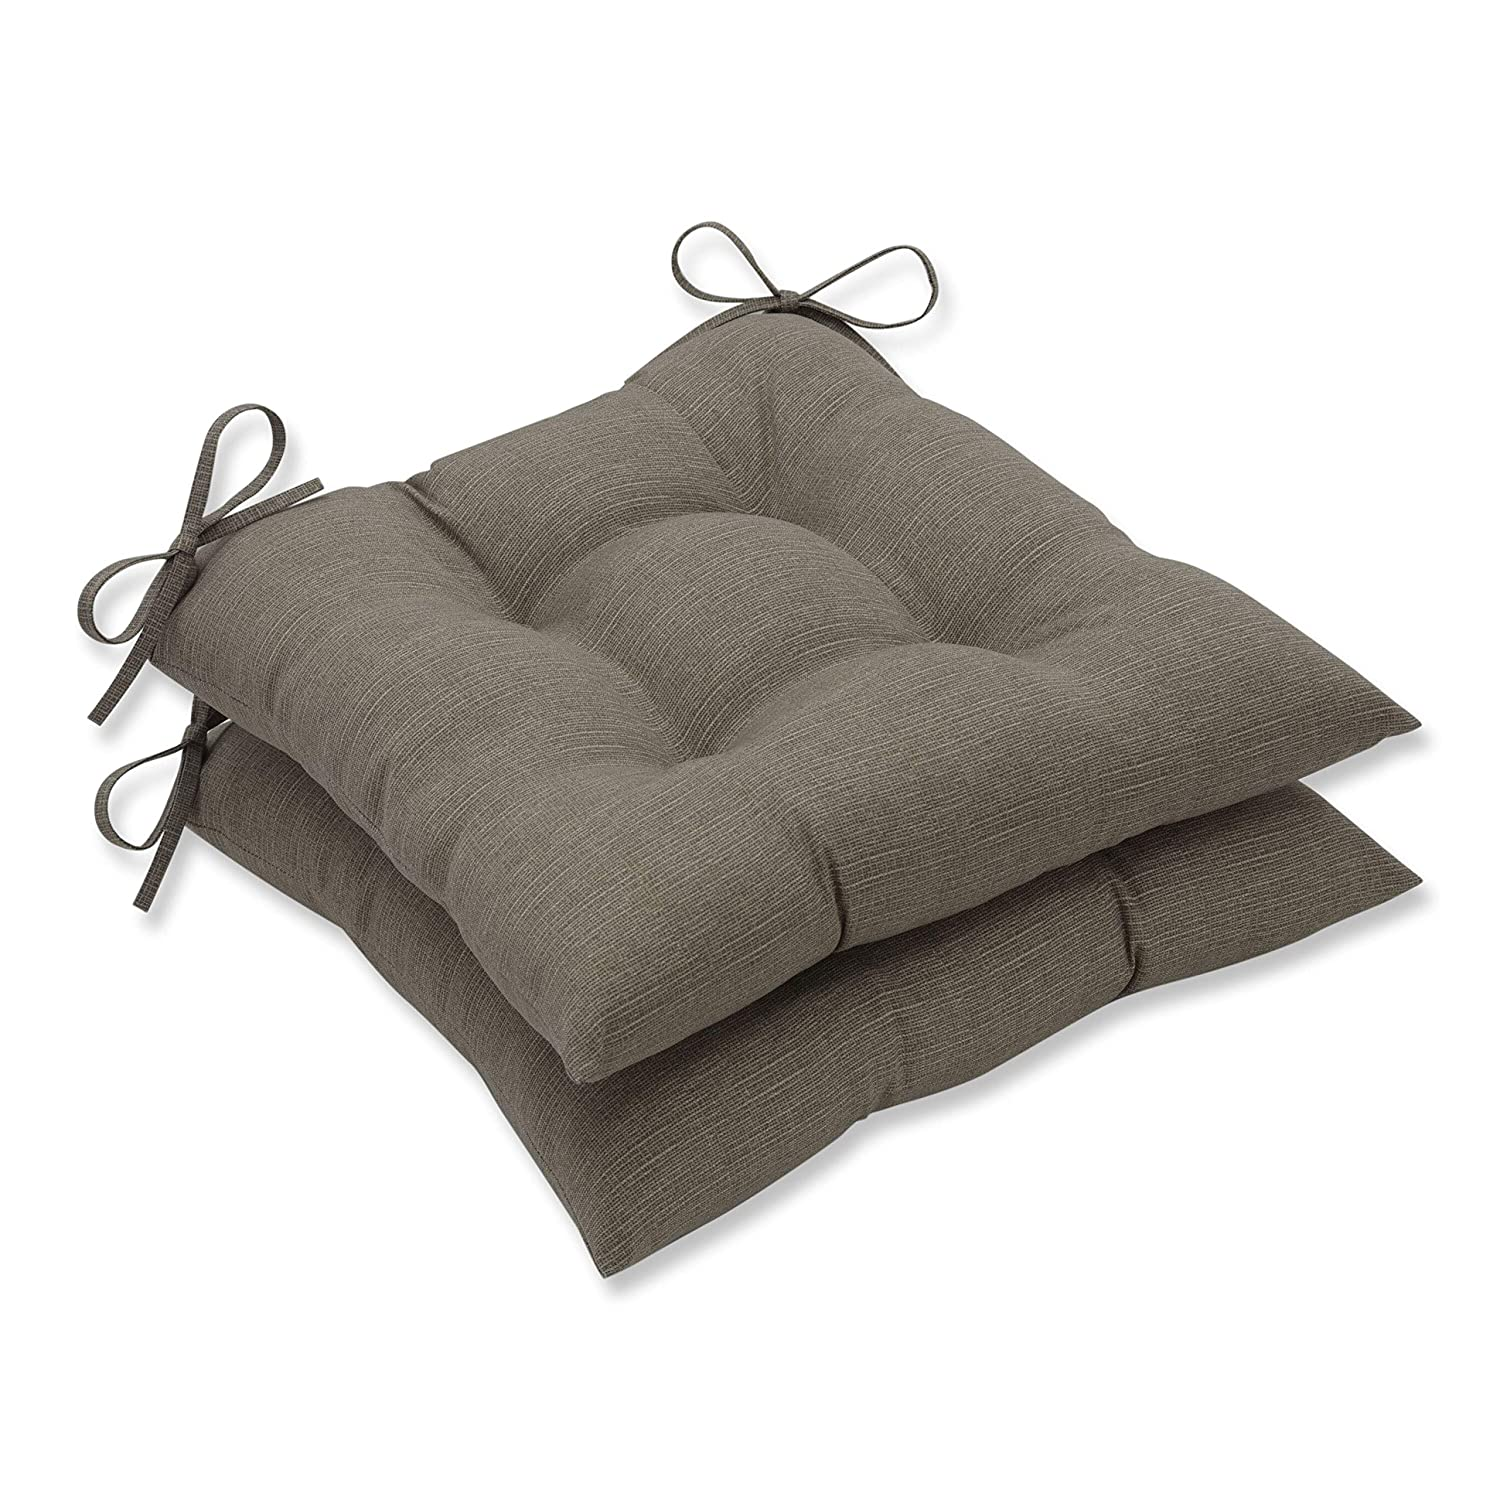 Pillow Perfect Indoor/Outdoor Taupe Textured Solid Tufted Seat Cushion, 2-Pack